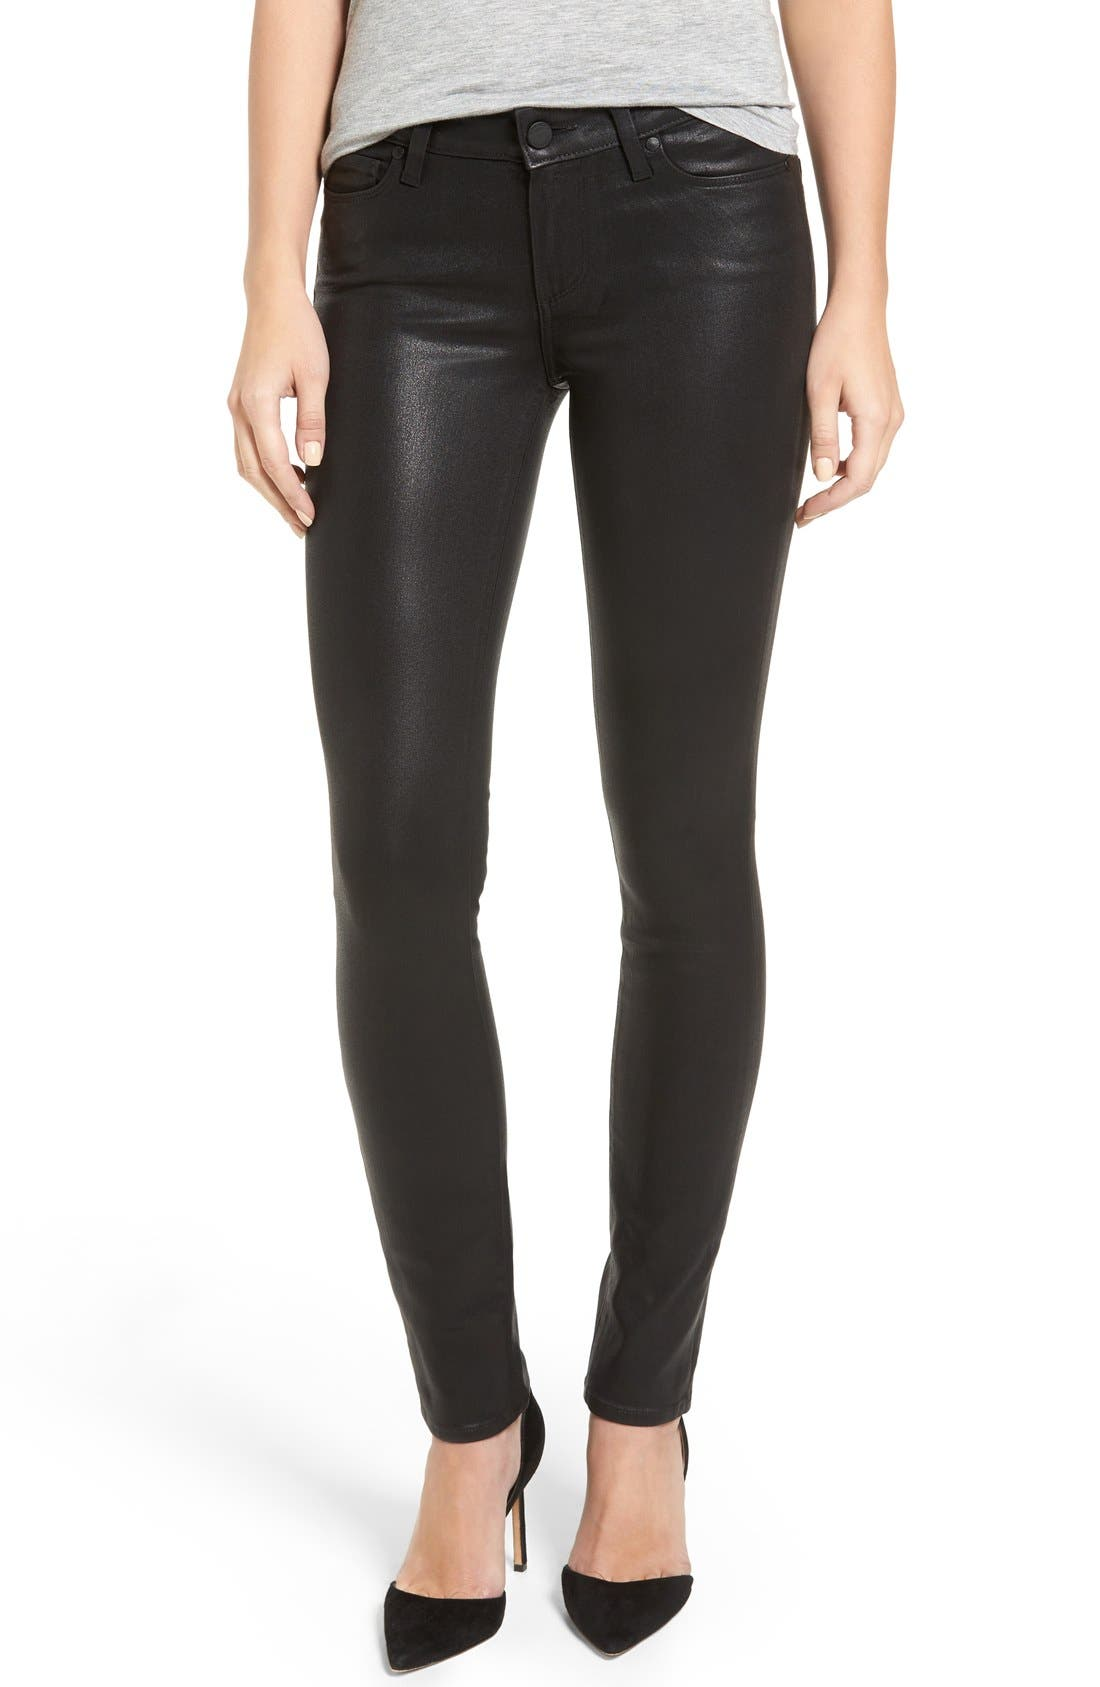 Main Image - PAIGE Verdugo Coated Ankle Skinny Jeans (Black Fog Luxe Coated) (Nordstrom Exclusive)